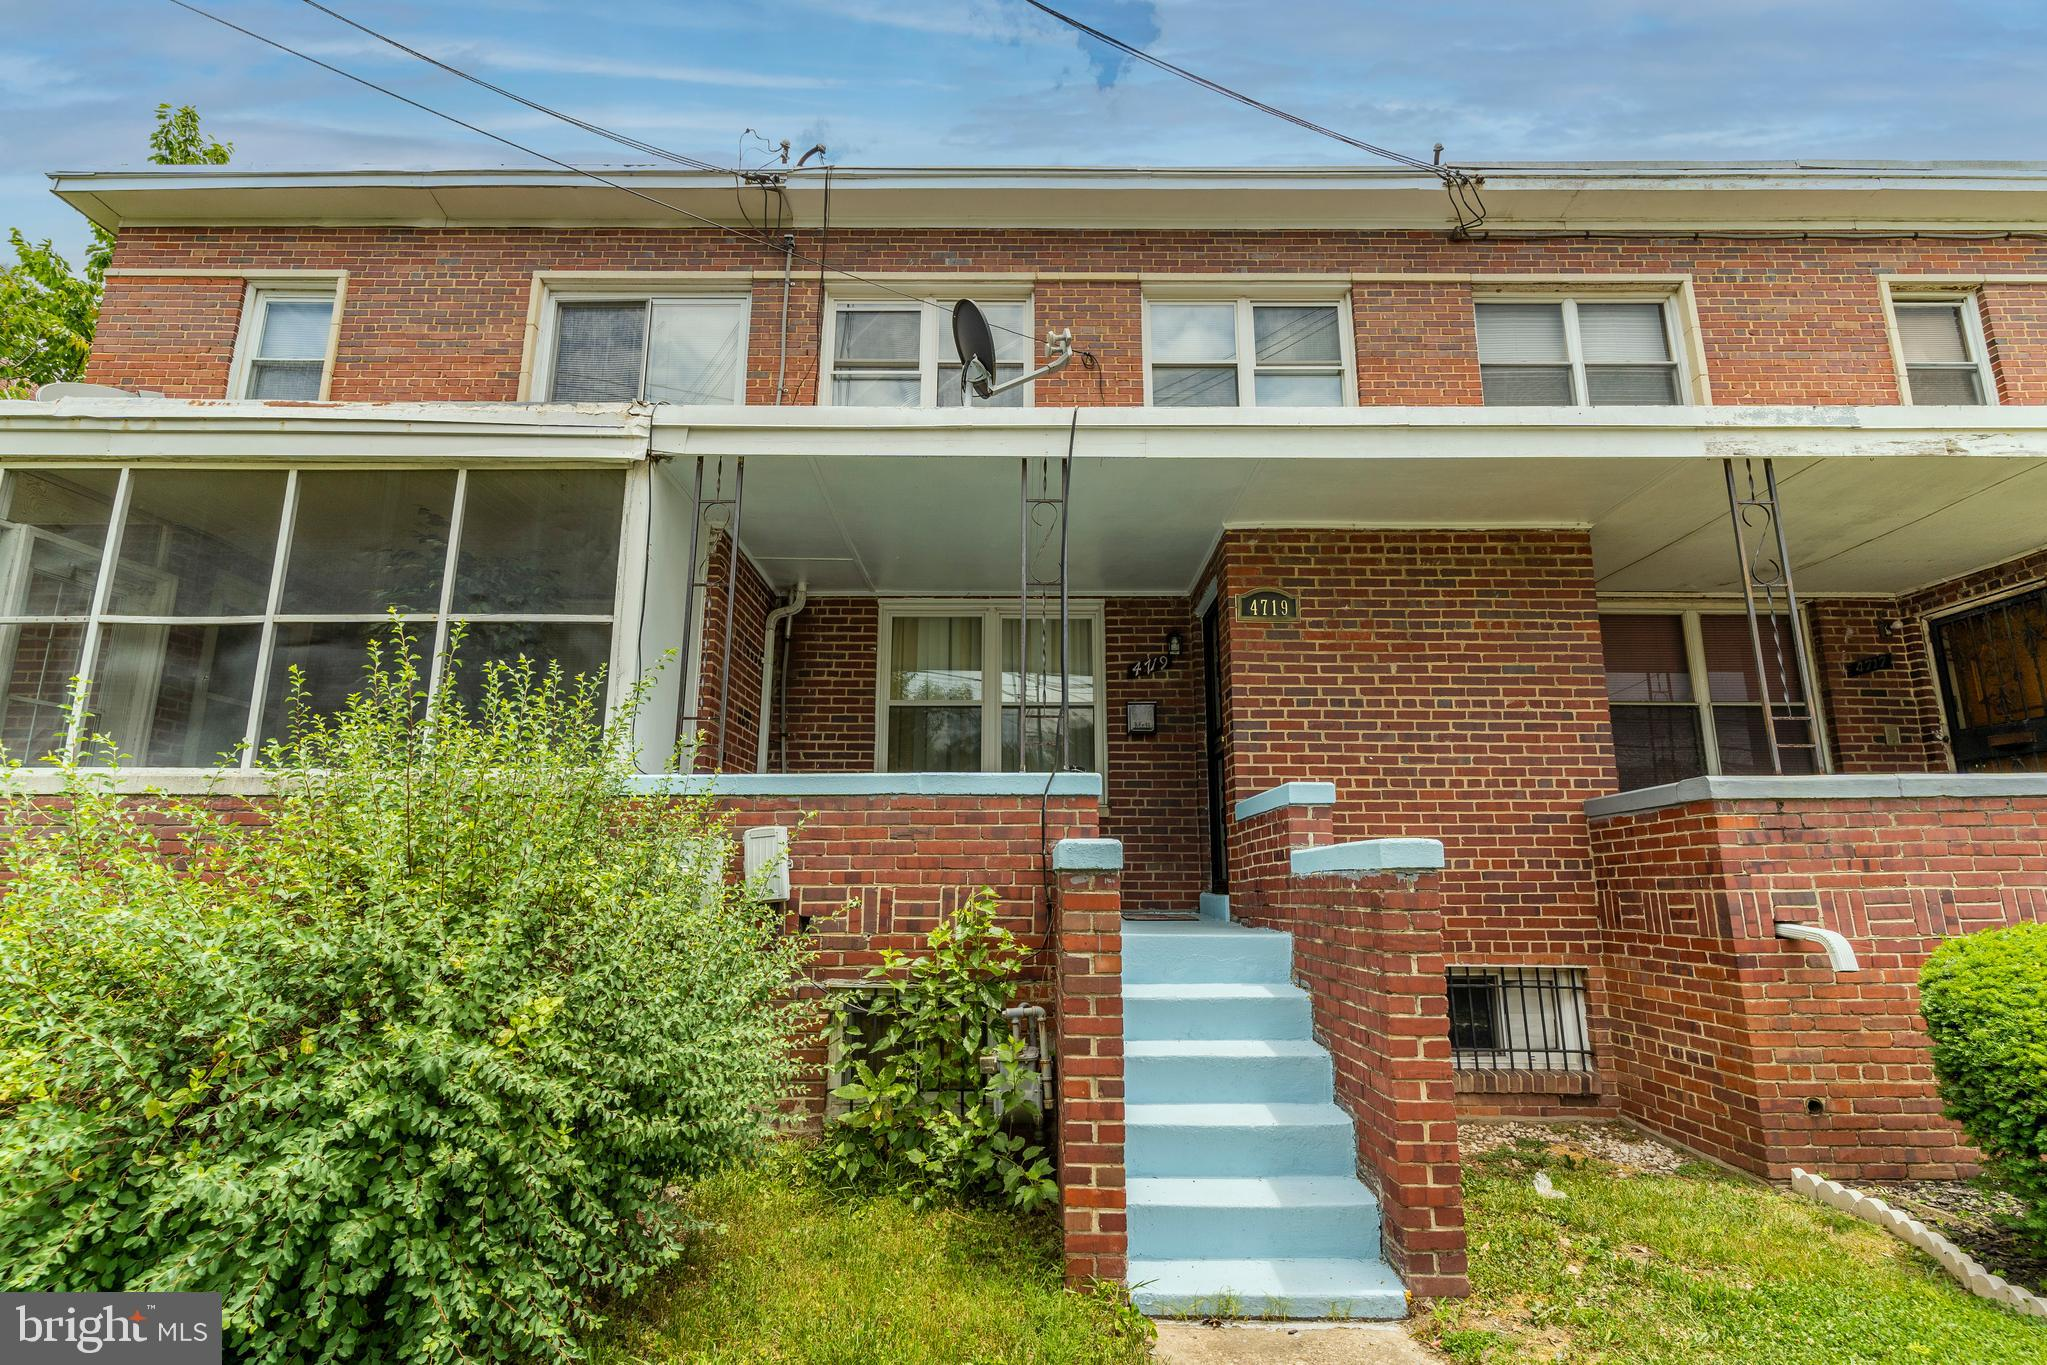 Gorgeous 3BR/2BA traditional brick townhome with fresh updates and endless possibilities in thriving